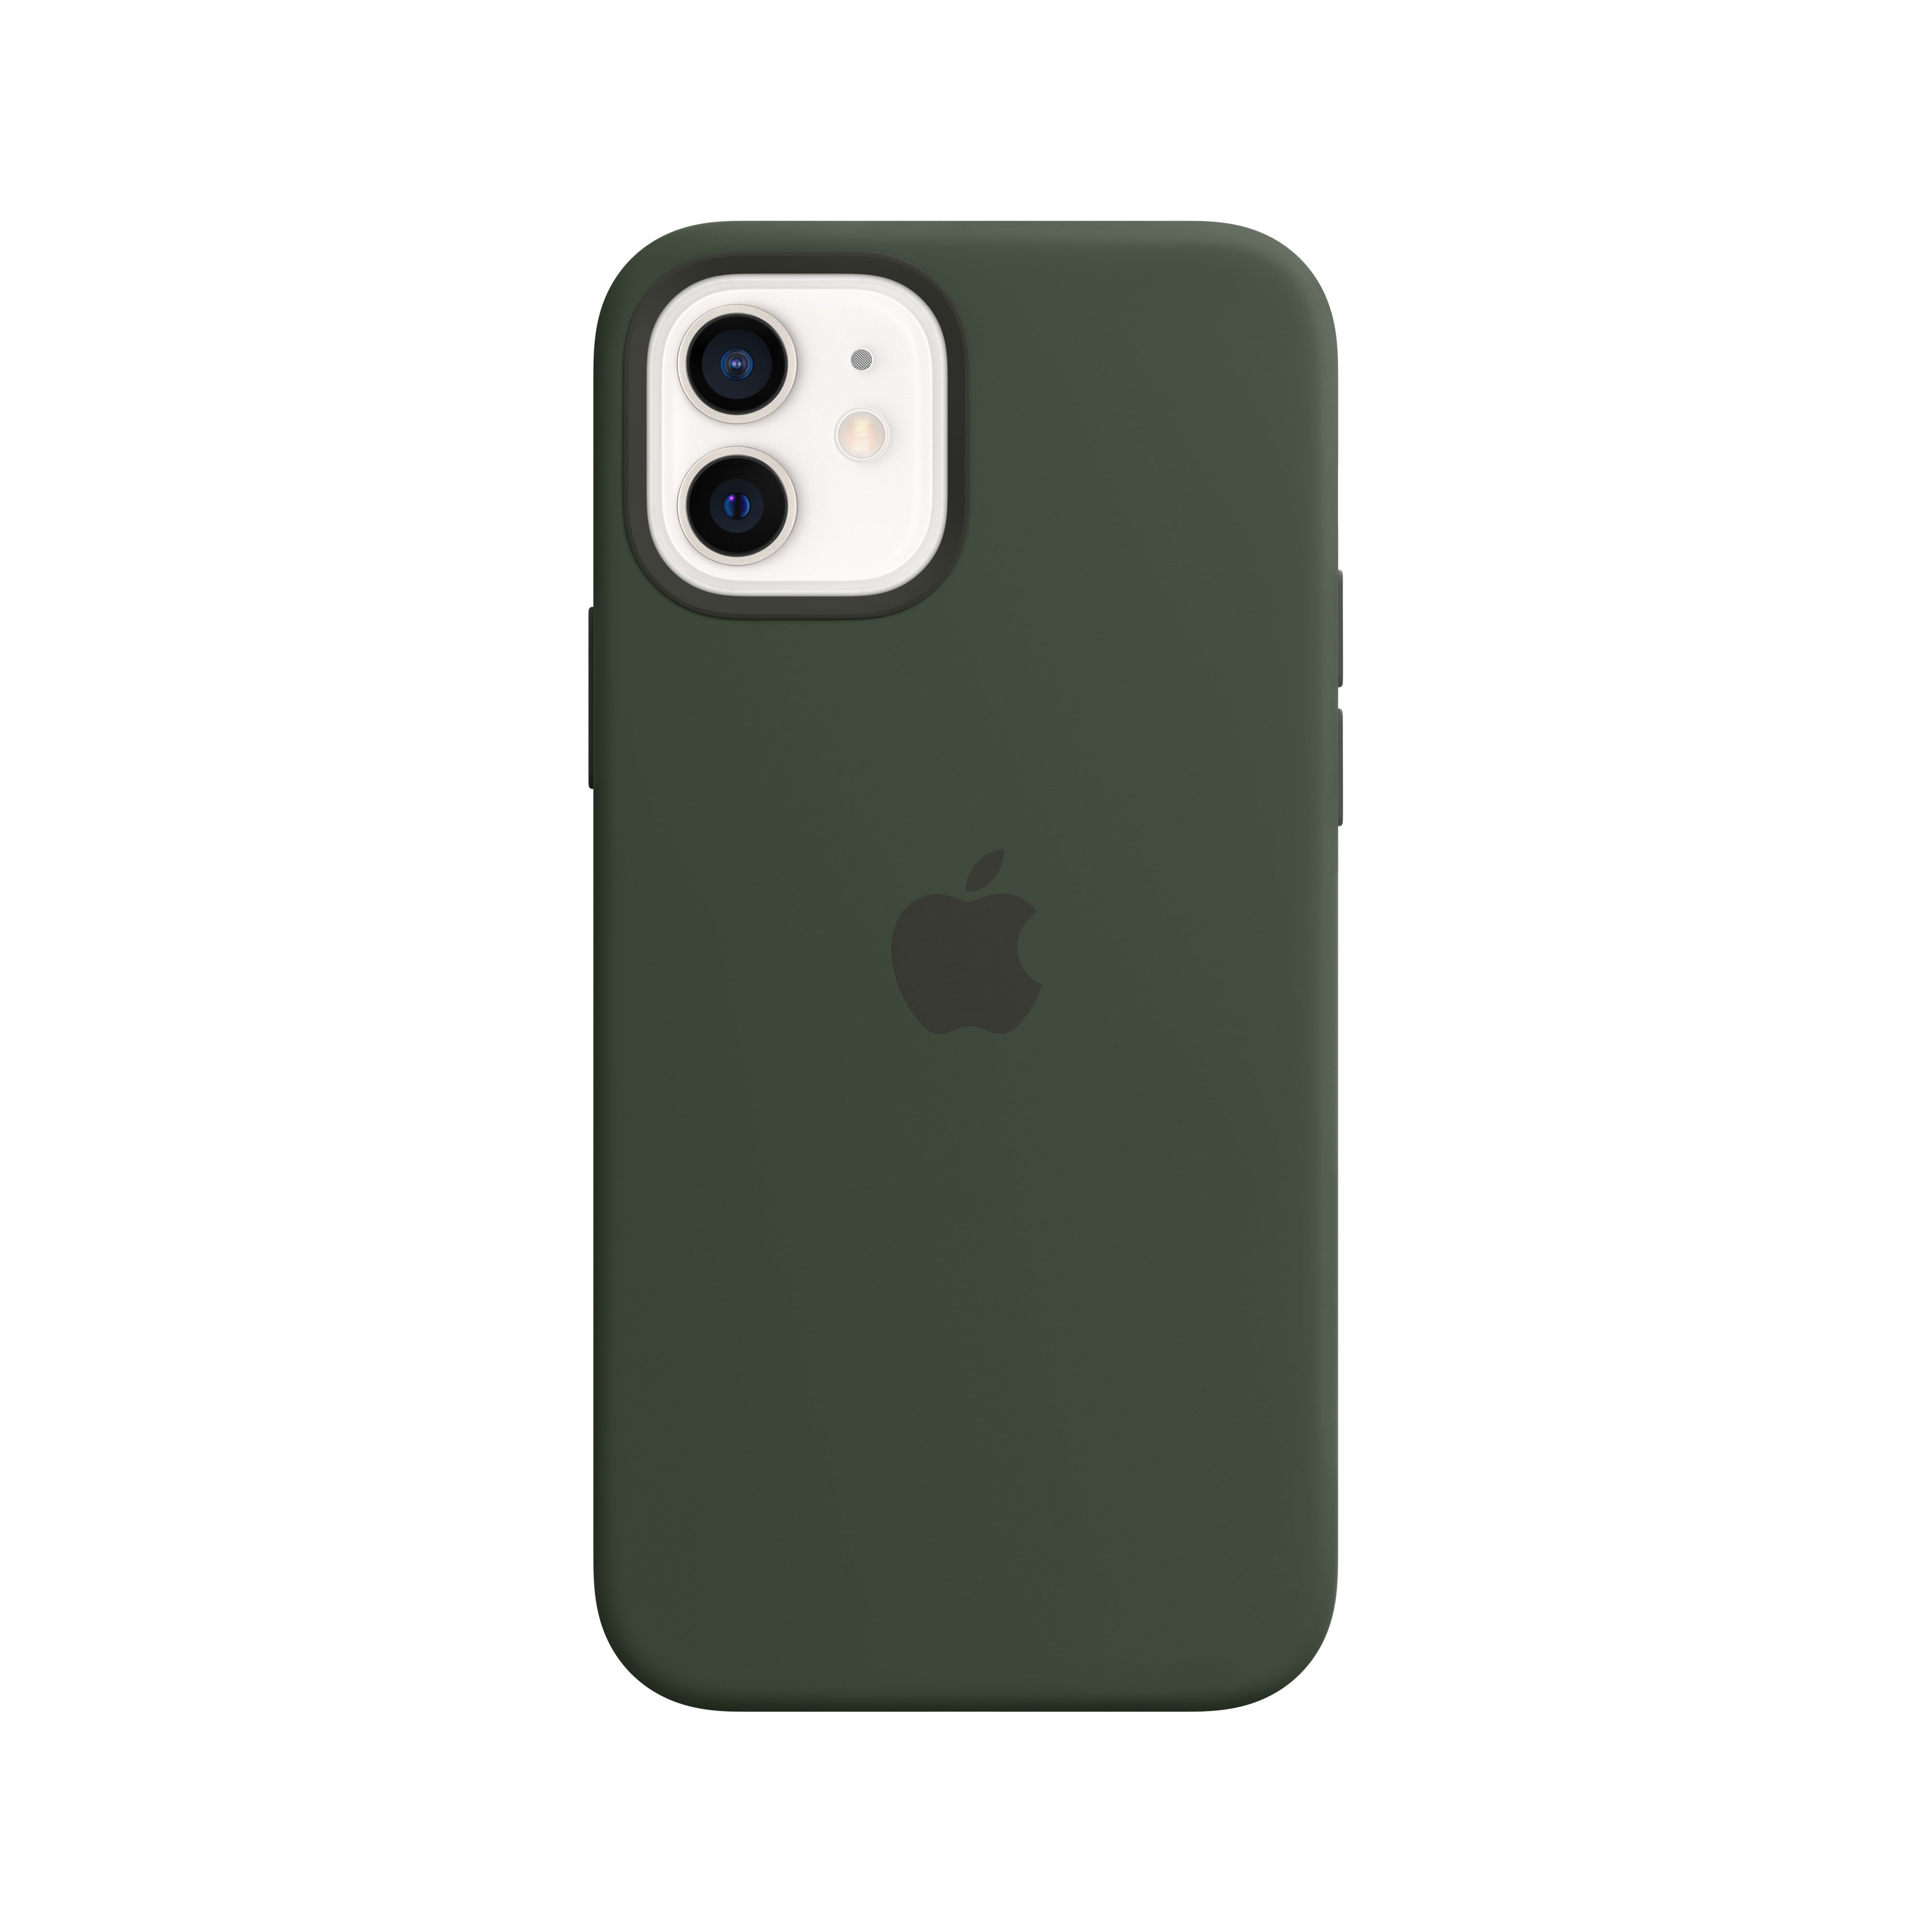 Apple - iPhone 12 | 12 Pro Silicone Case with MagSafe - Cypress Green Mhl33zm/a